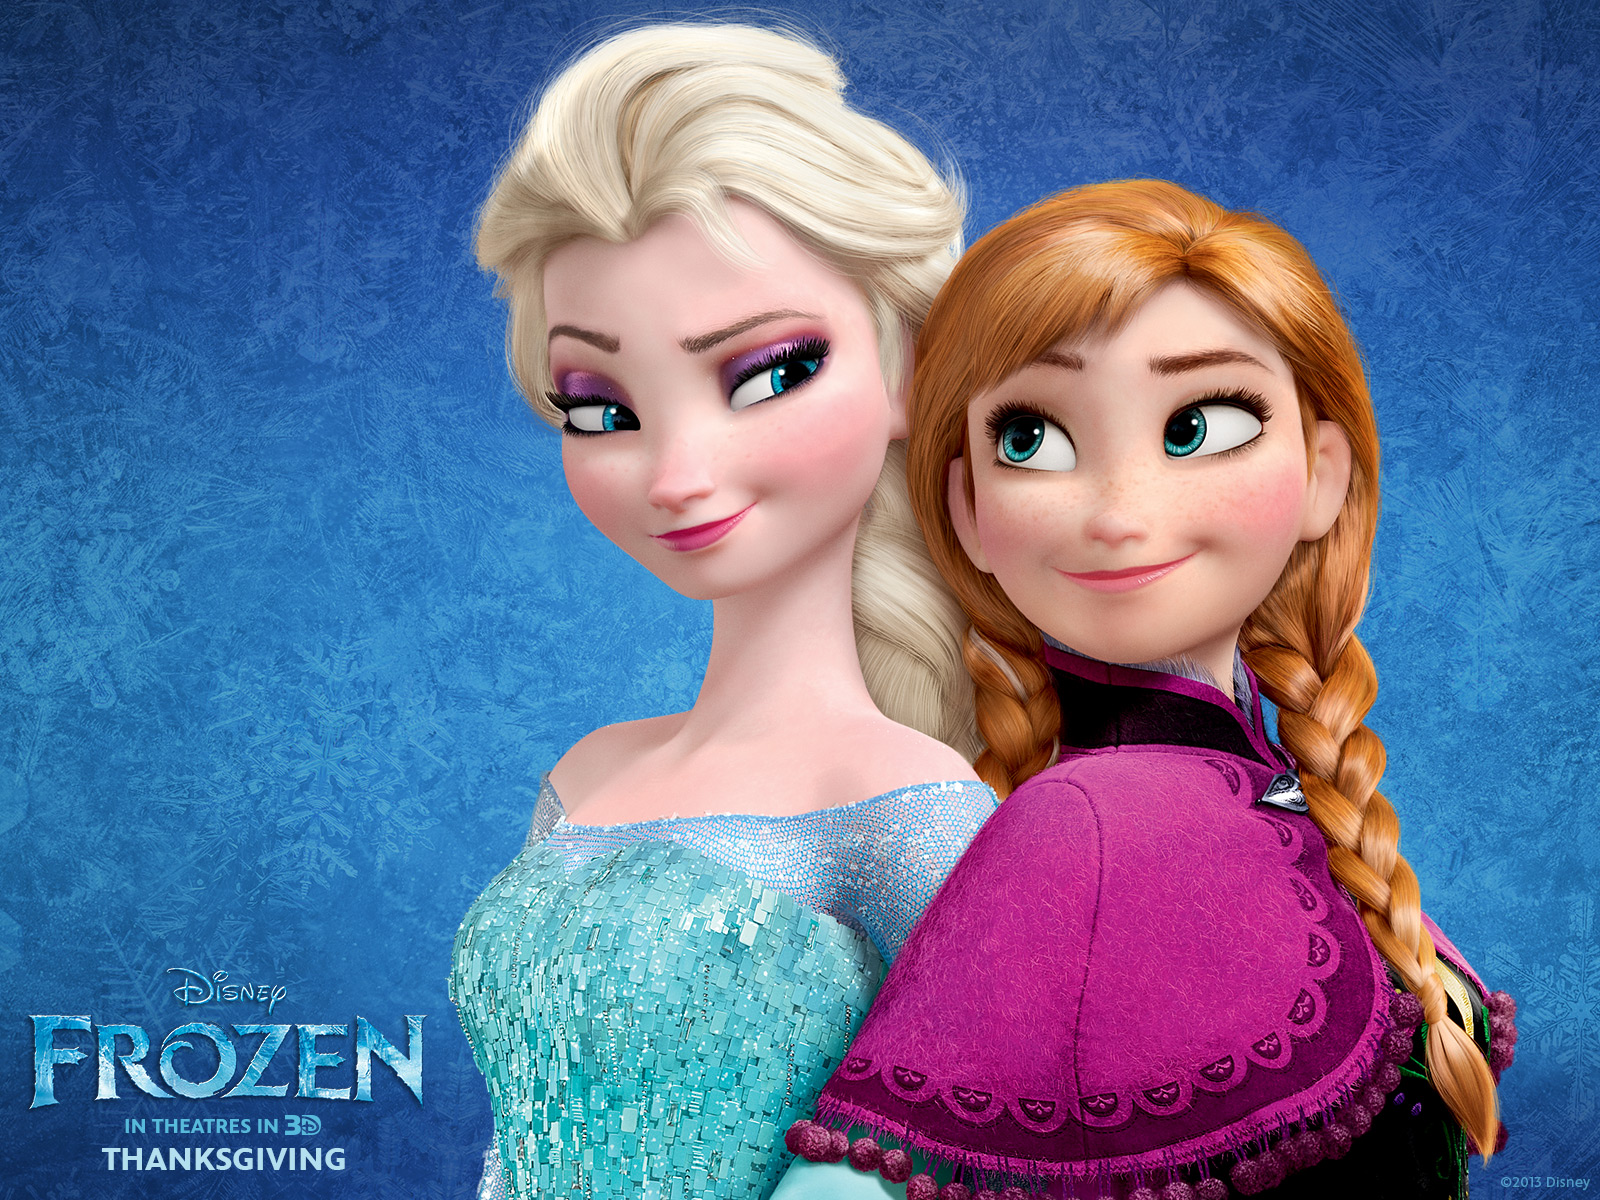 elsa and anna wallpapers,doll,toy,barbie,iris,animation